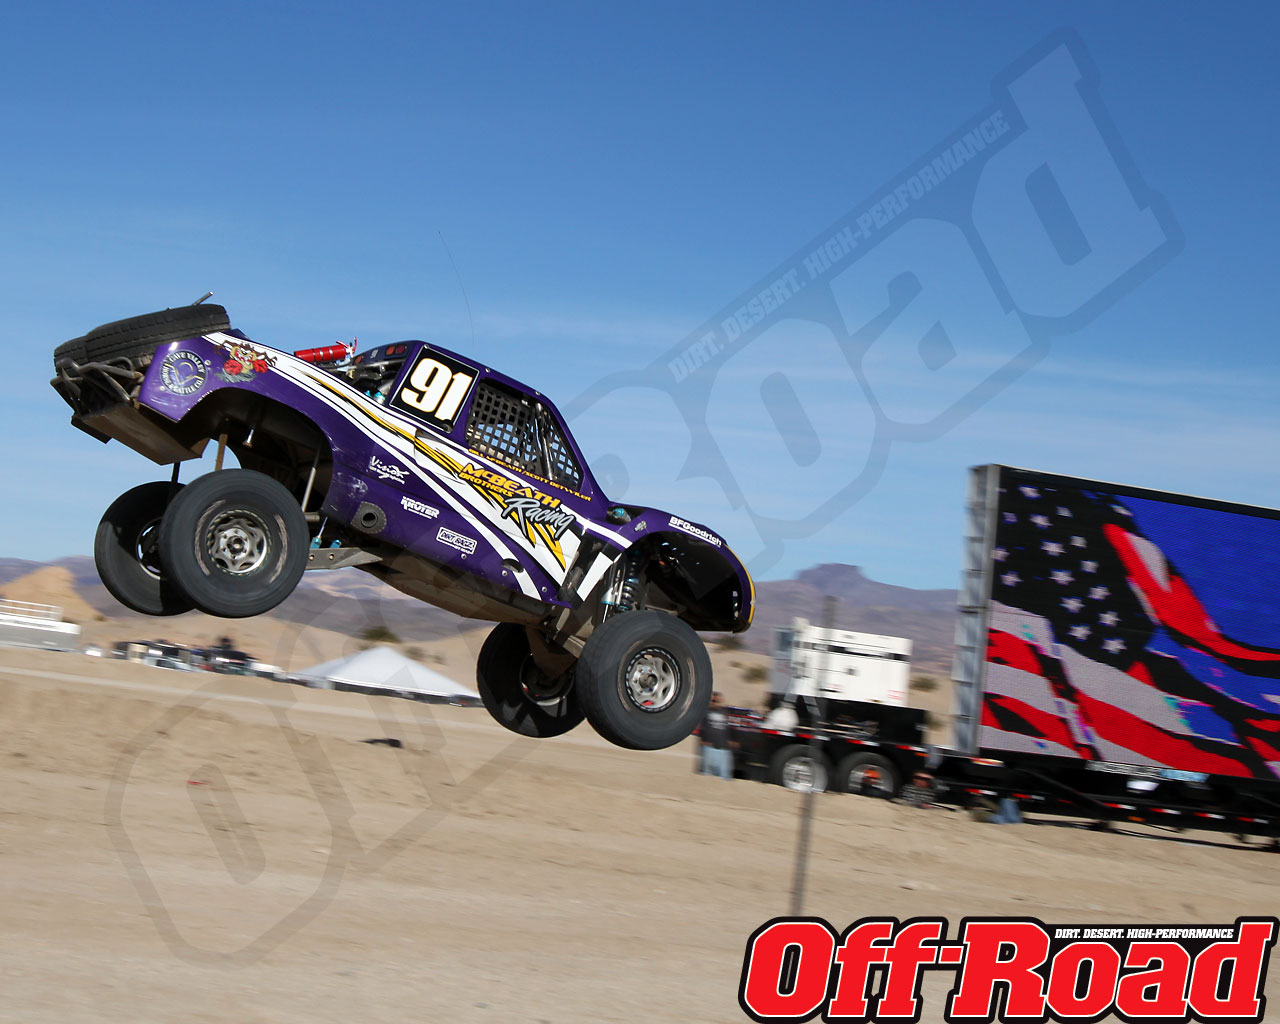 1002or 0604 o+2010 score laughlin desert challenge+trophy truck